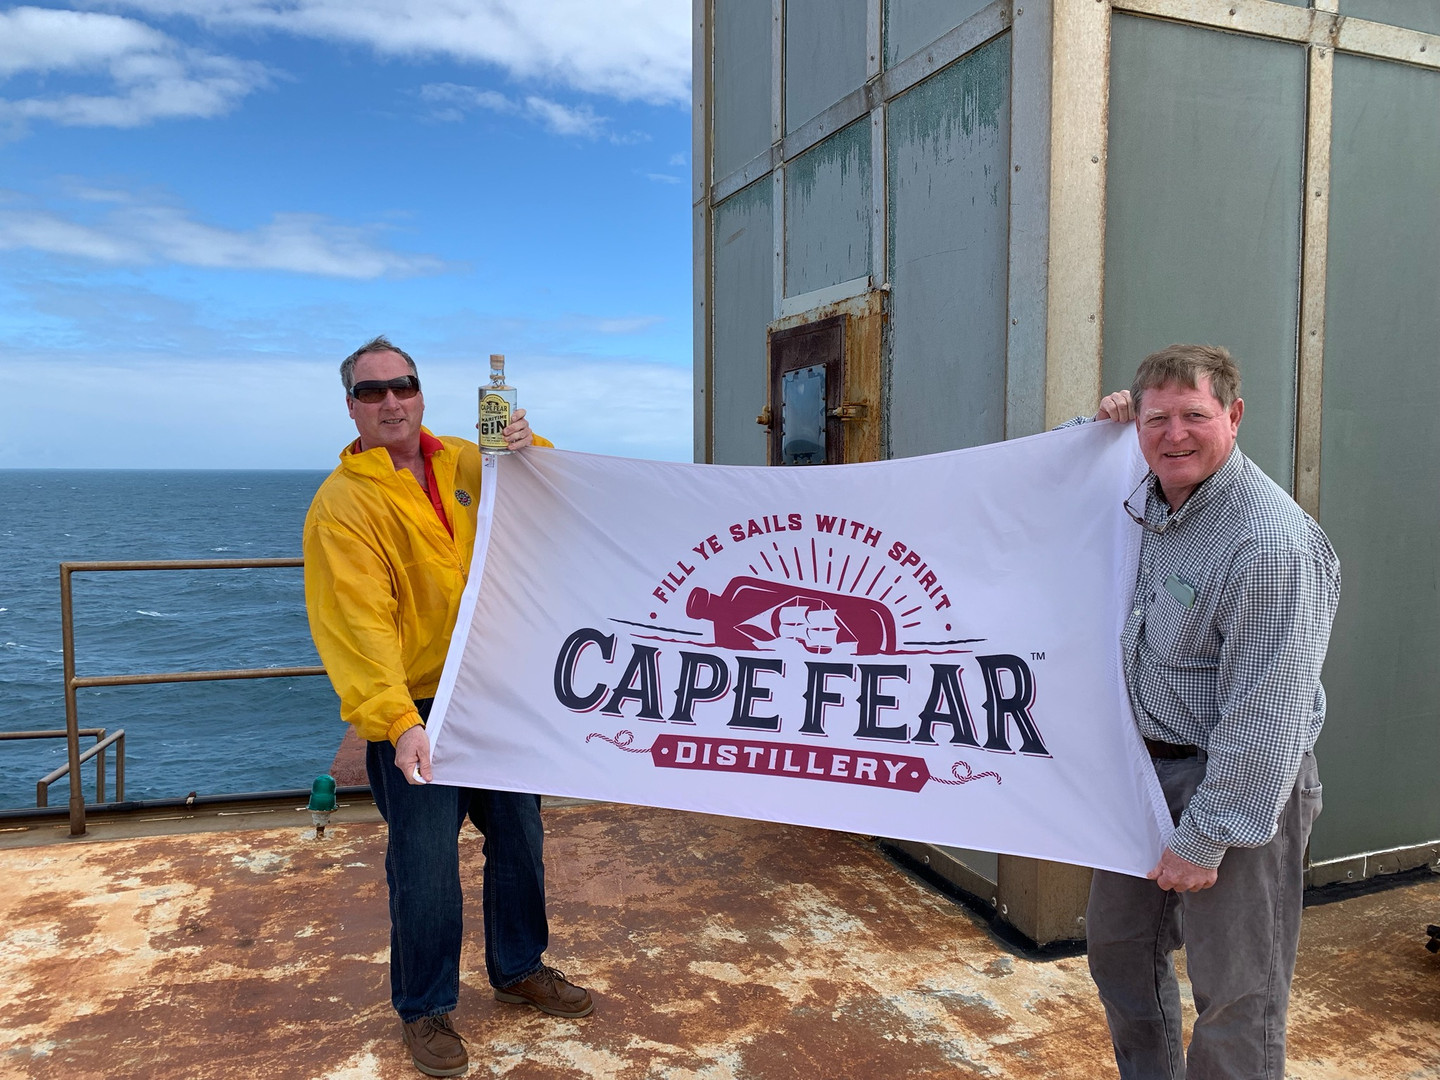 Alex and Rick flying Cape Fear Distillery Flag at Frying Pan Tower